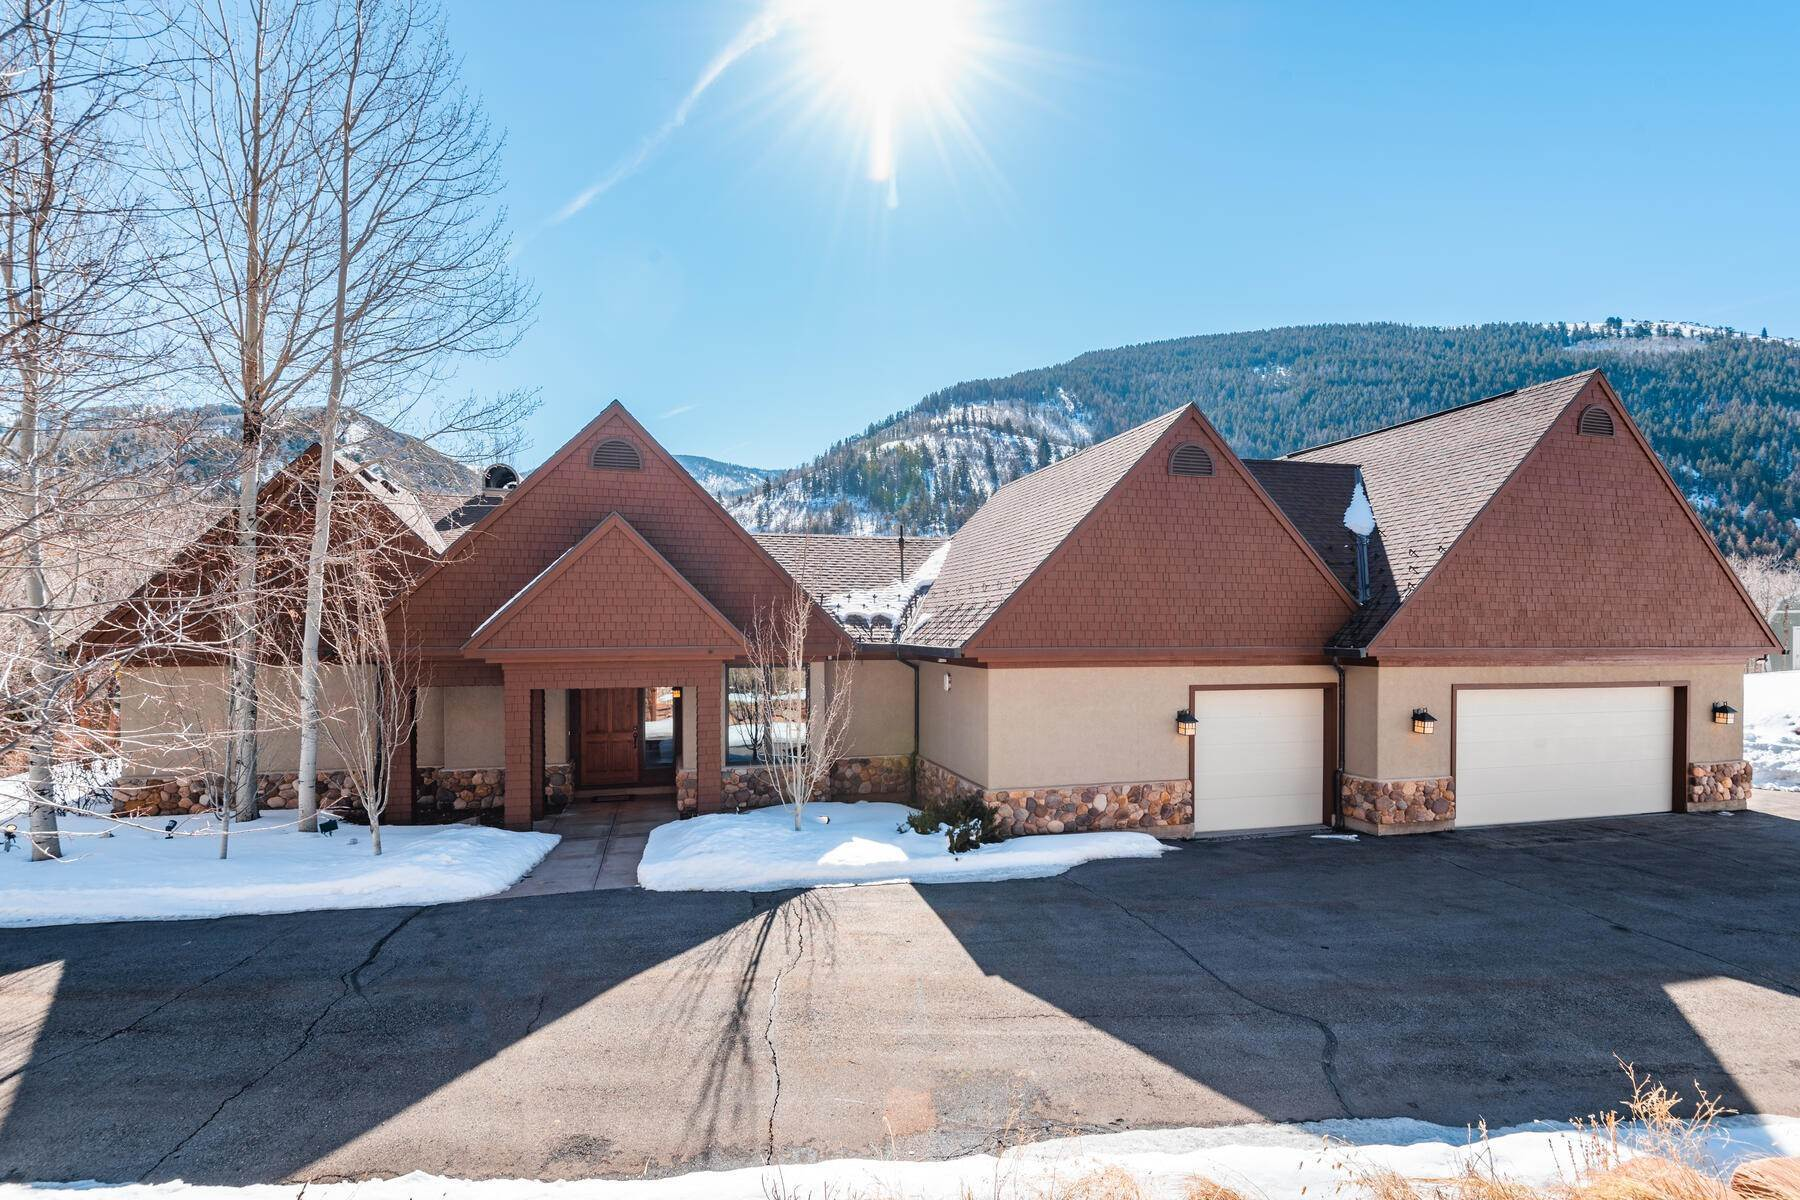 Single Family Homes for Sale at Weber Canyon Home on 6.4 Acres 2572 W Weber Canyon Road Oakley, Utah 84055 United States